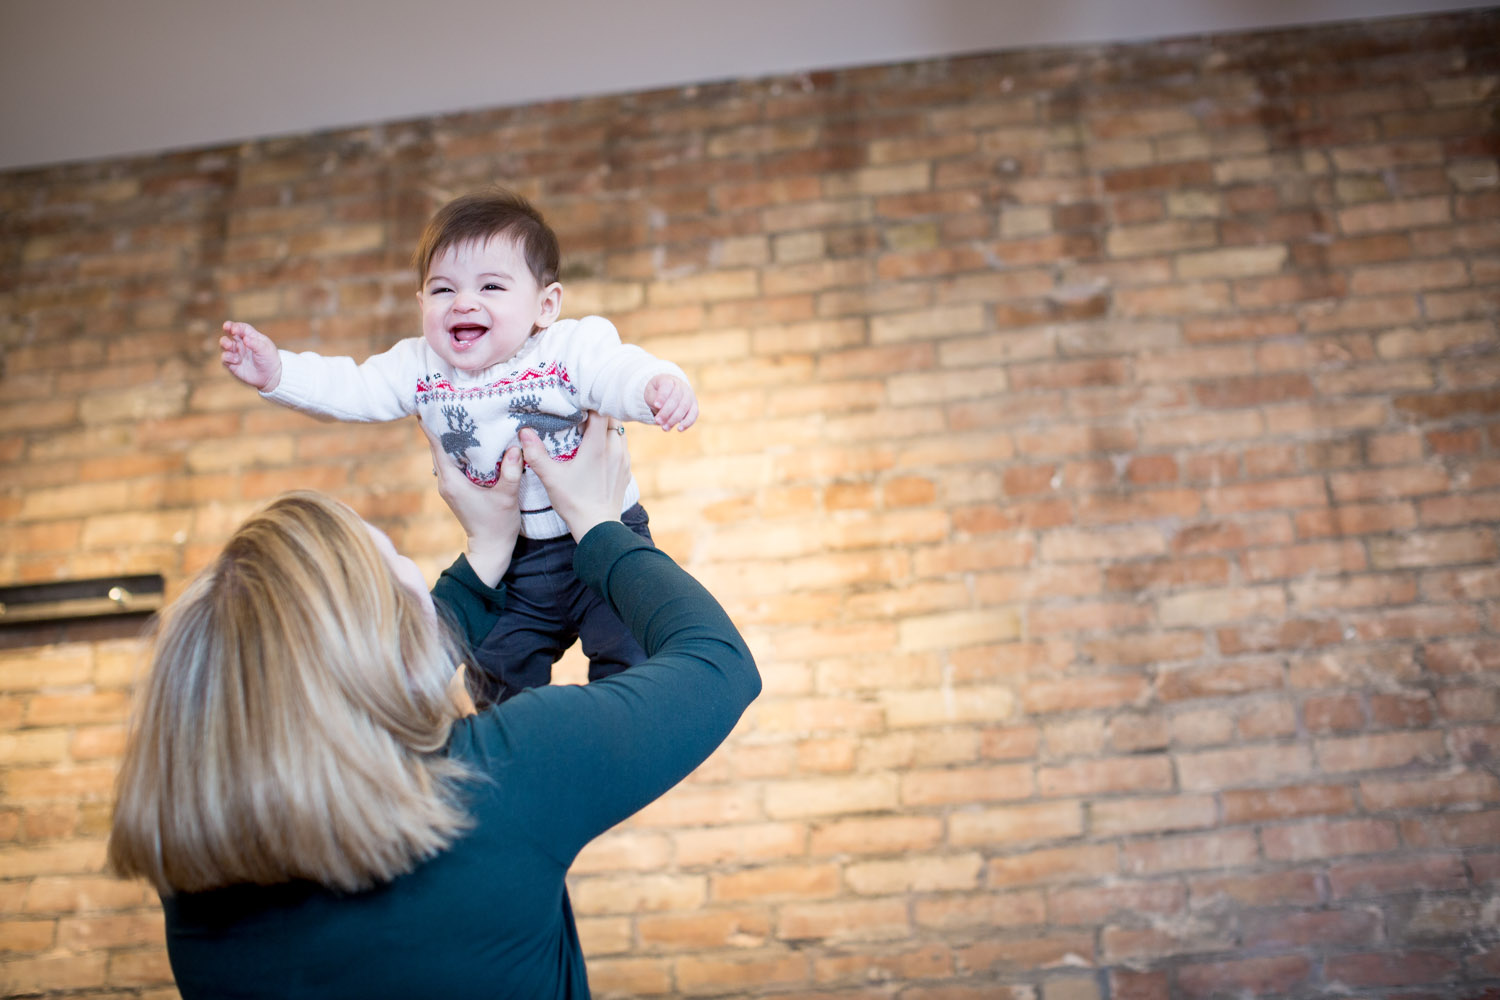 04-mn-studio-family-photgrapher-brick-wall-flying-with-momma-6-month-old-boy-portrait-mahonen-photography.jpg